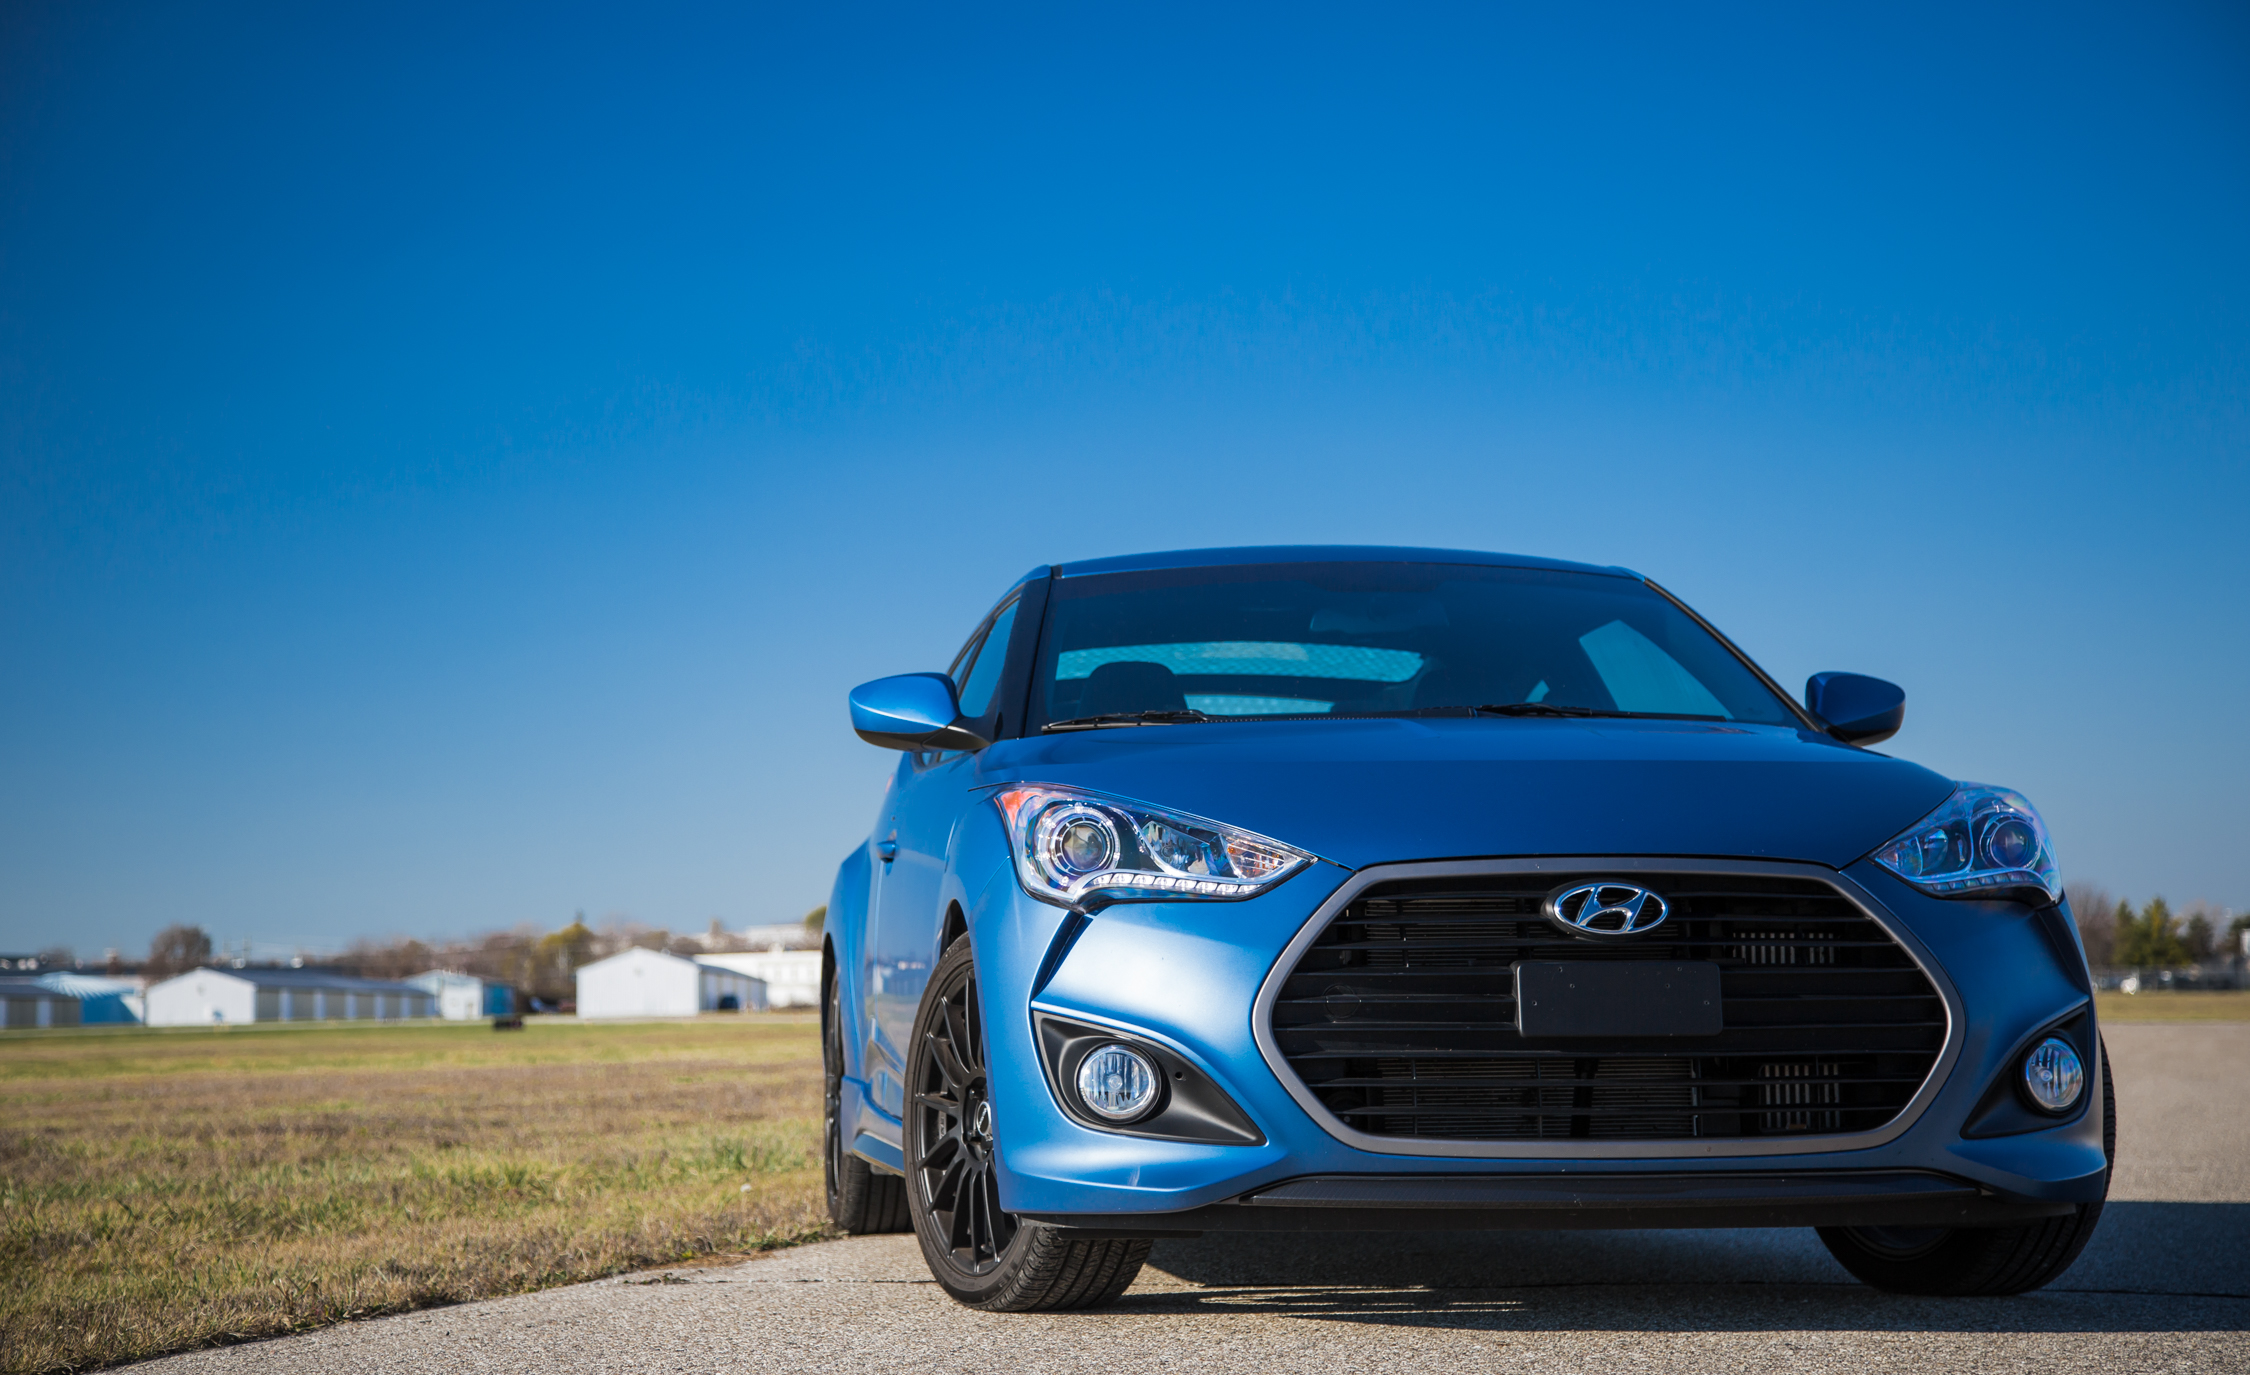 2016 Hyundai Veloster Turbo Rally Edition Exterior Full Front